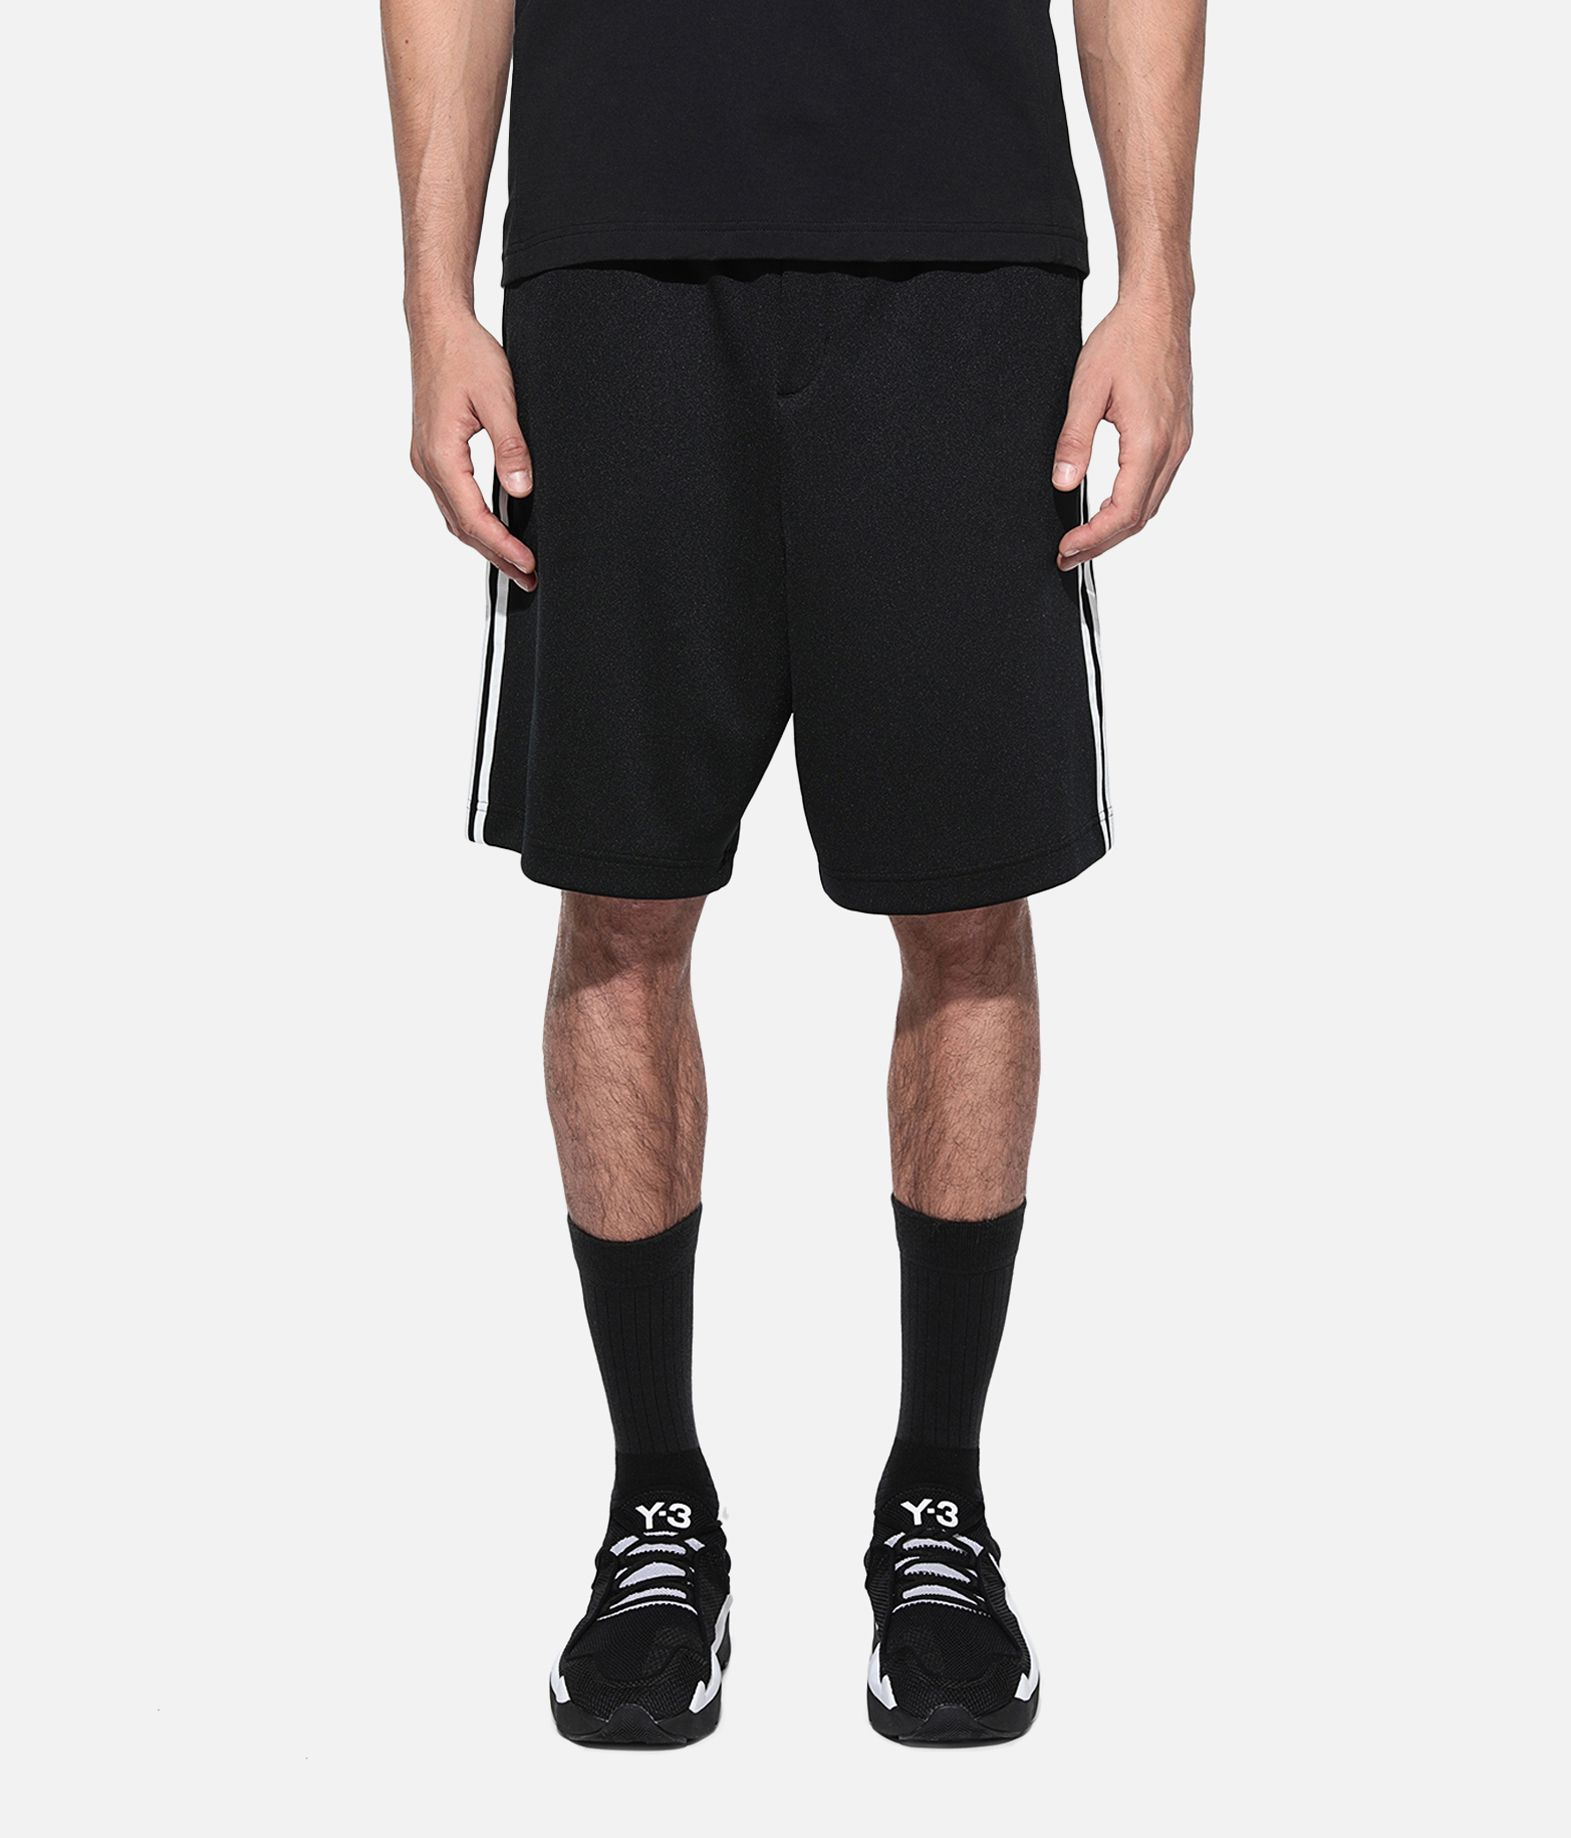 Y-3 Y-3 3-Stripes Track Shorts Track pant Man r